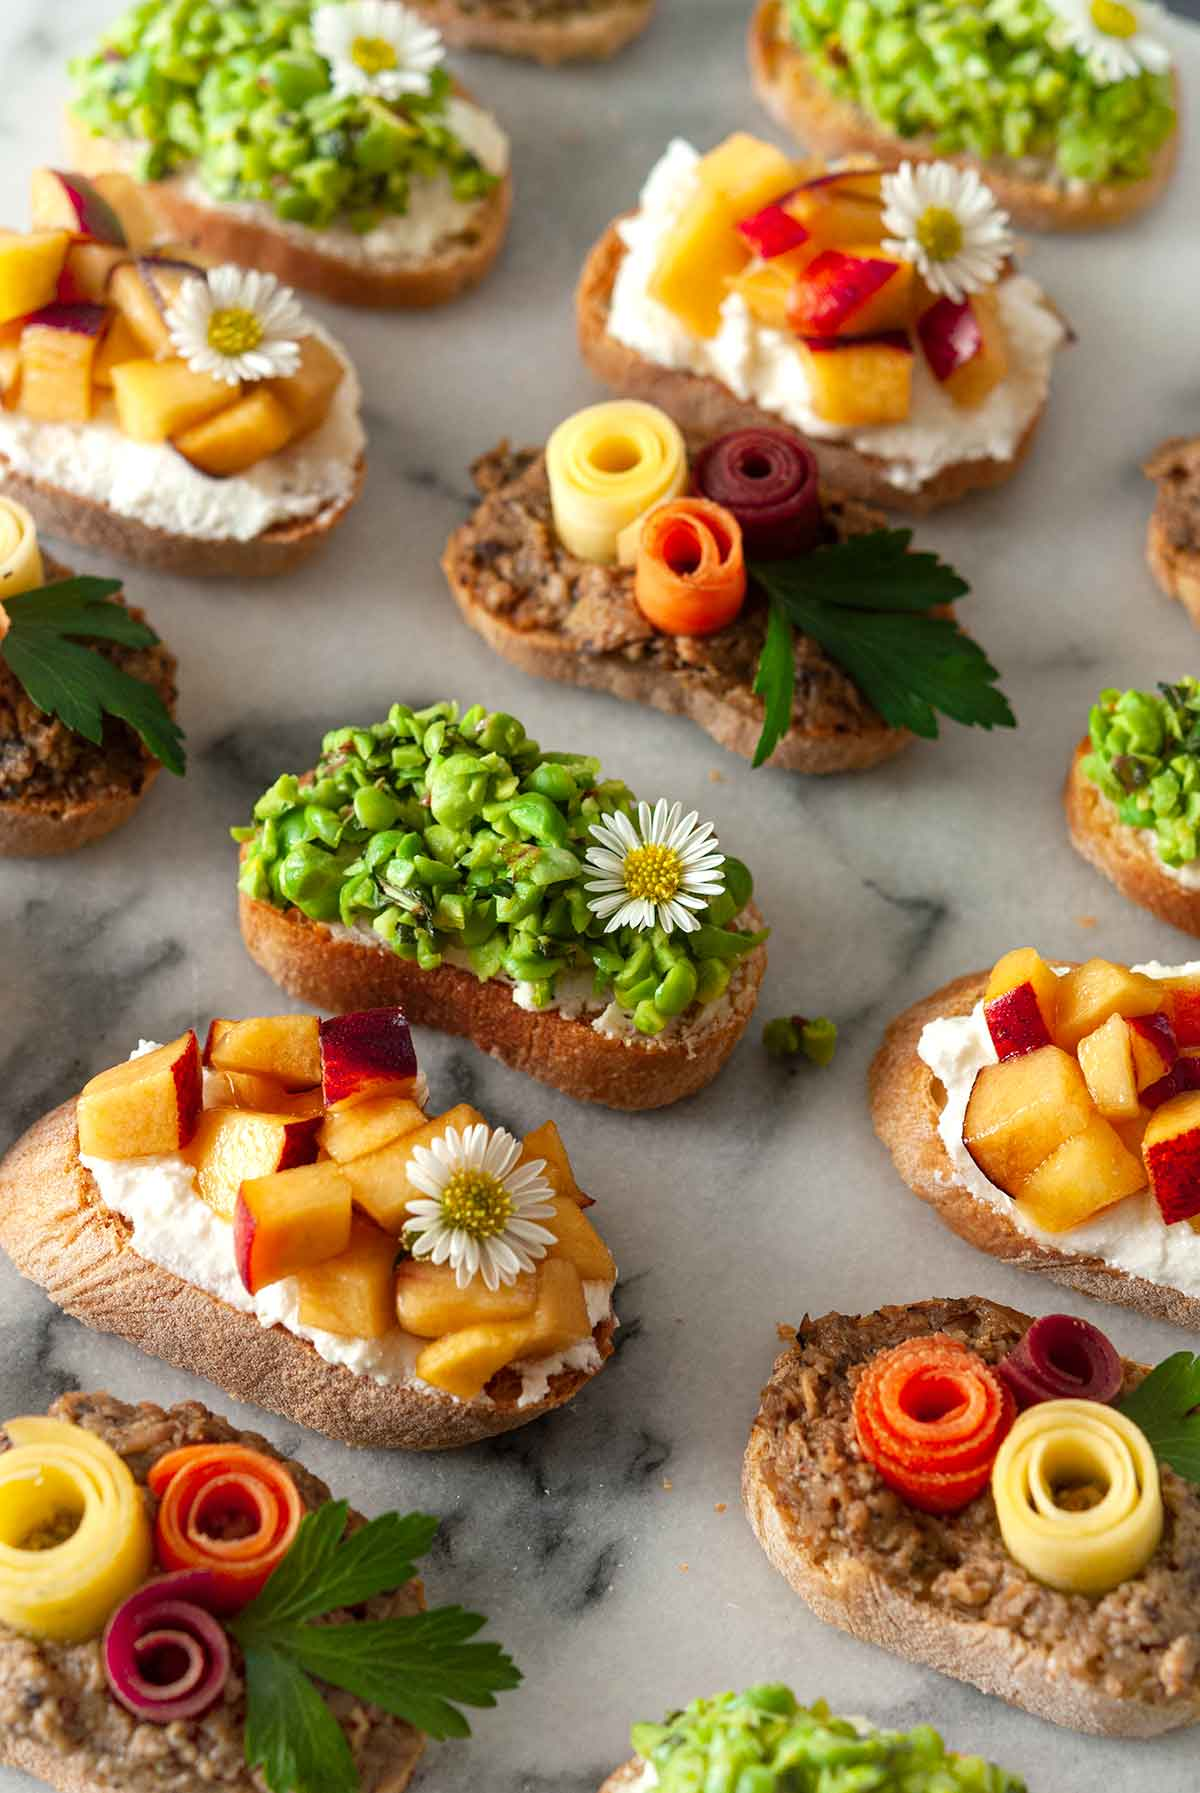 13 beautifully garnished crostini on a marble plate.